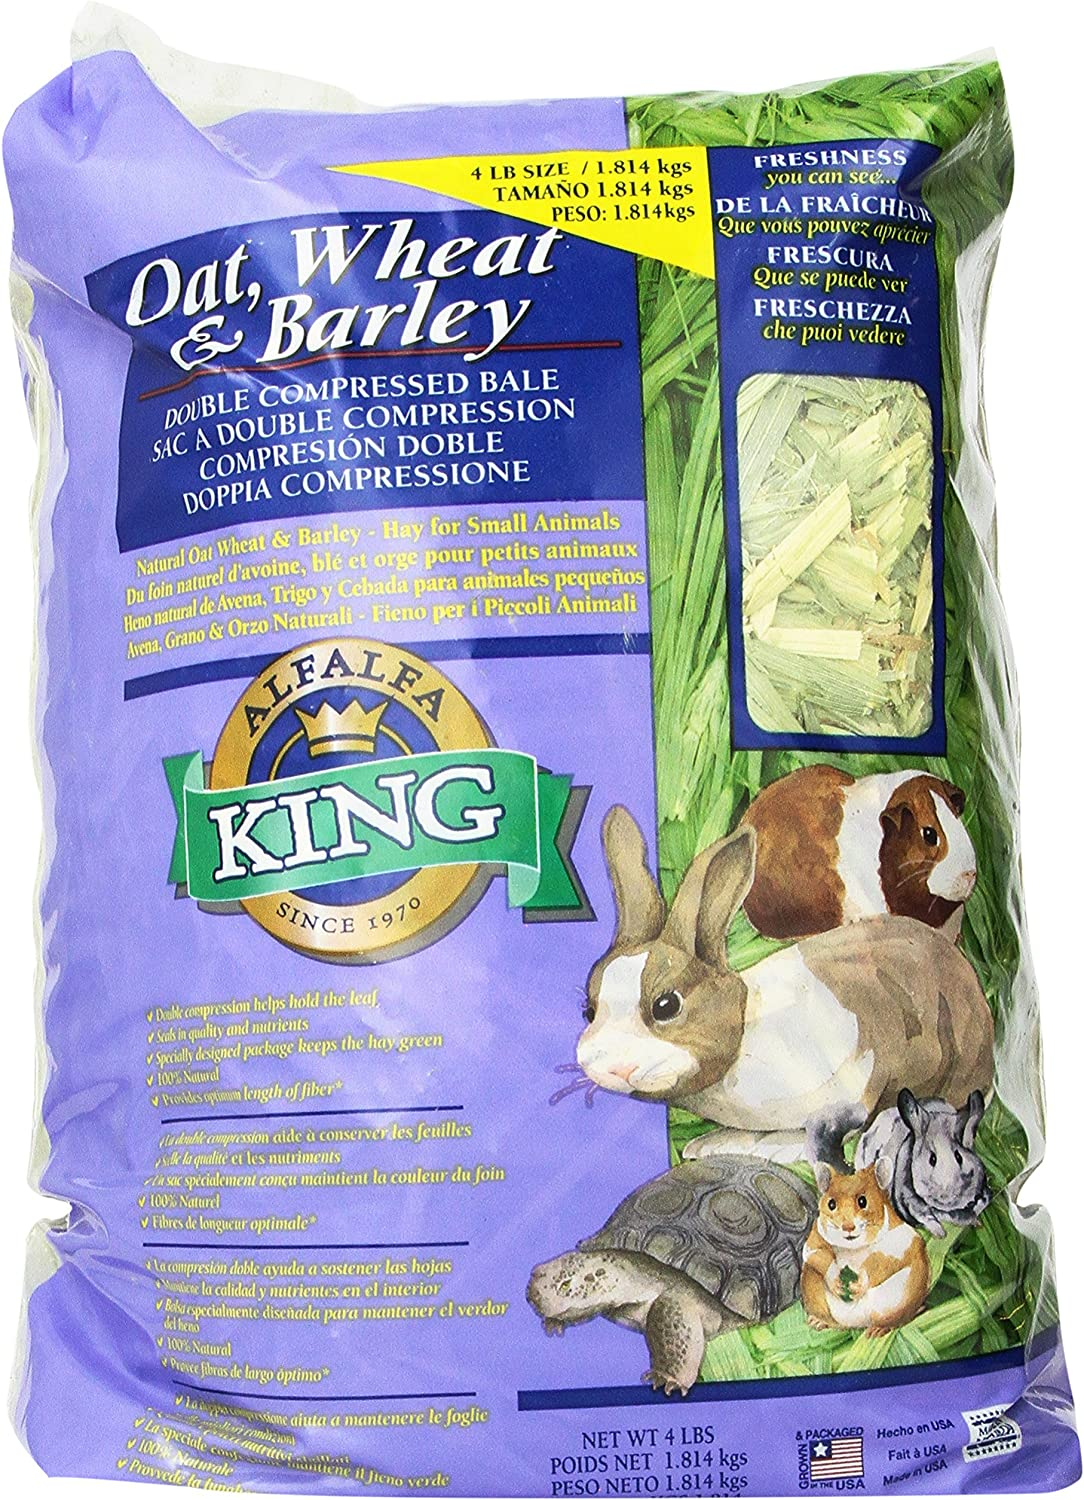 Alfalfa King Double Compressed Oat Wheat And Barley Hay Pet Food, 12 By 9 By 5Inch